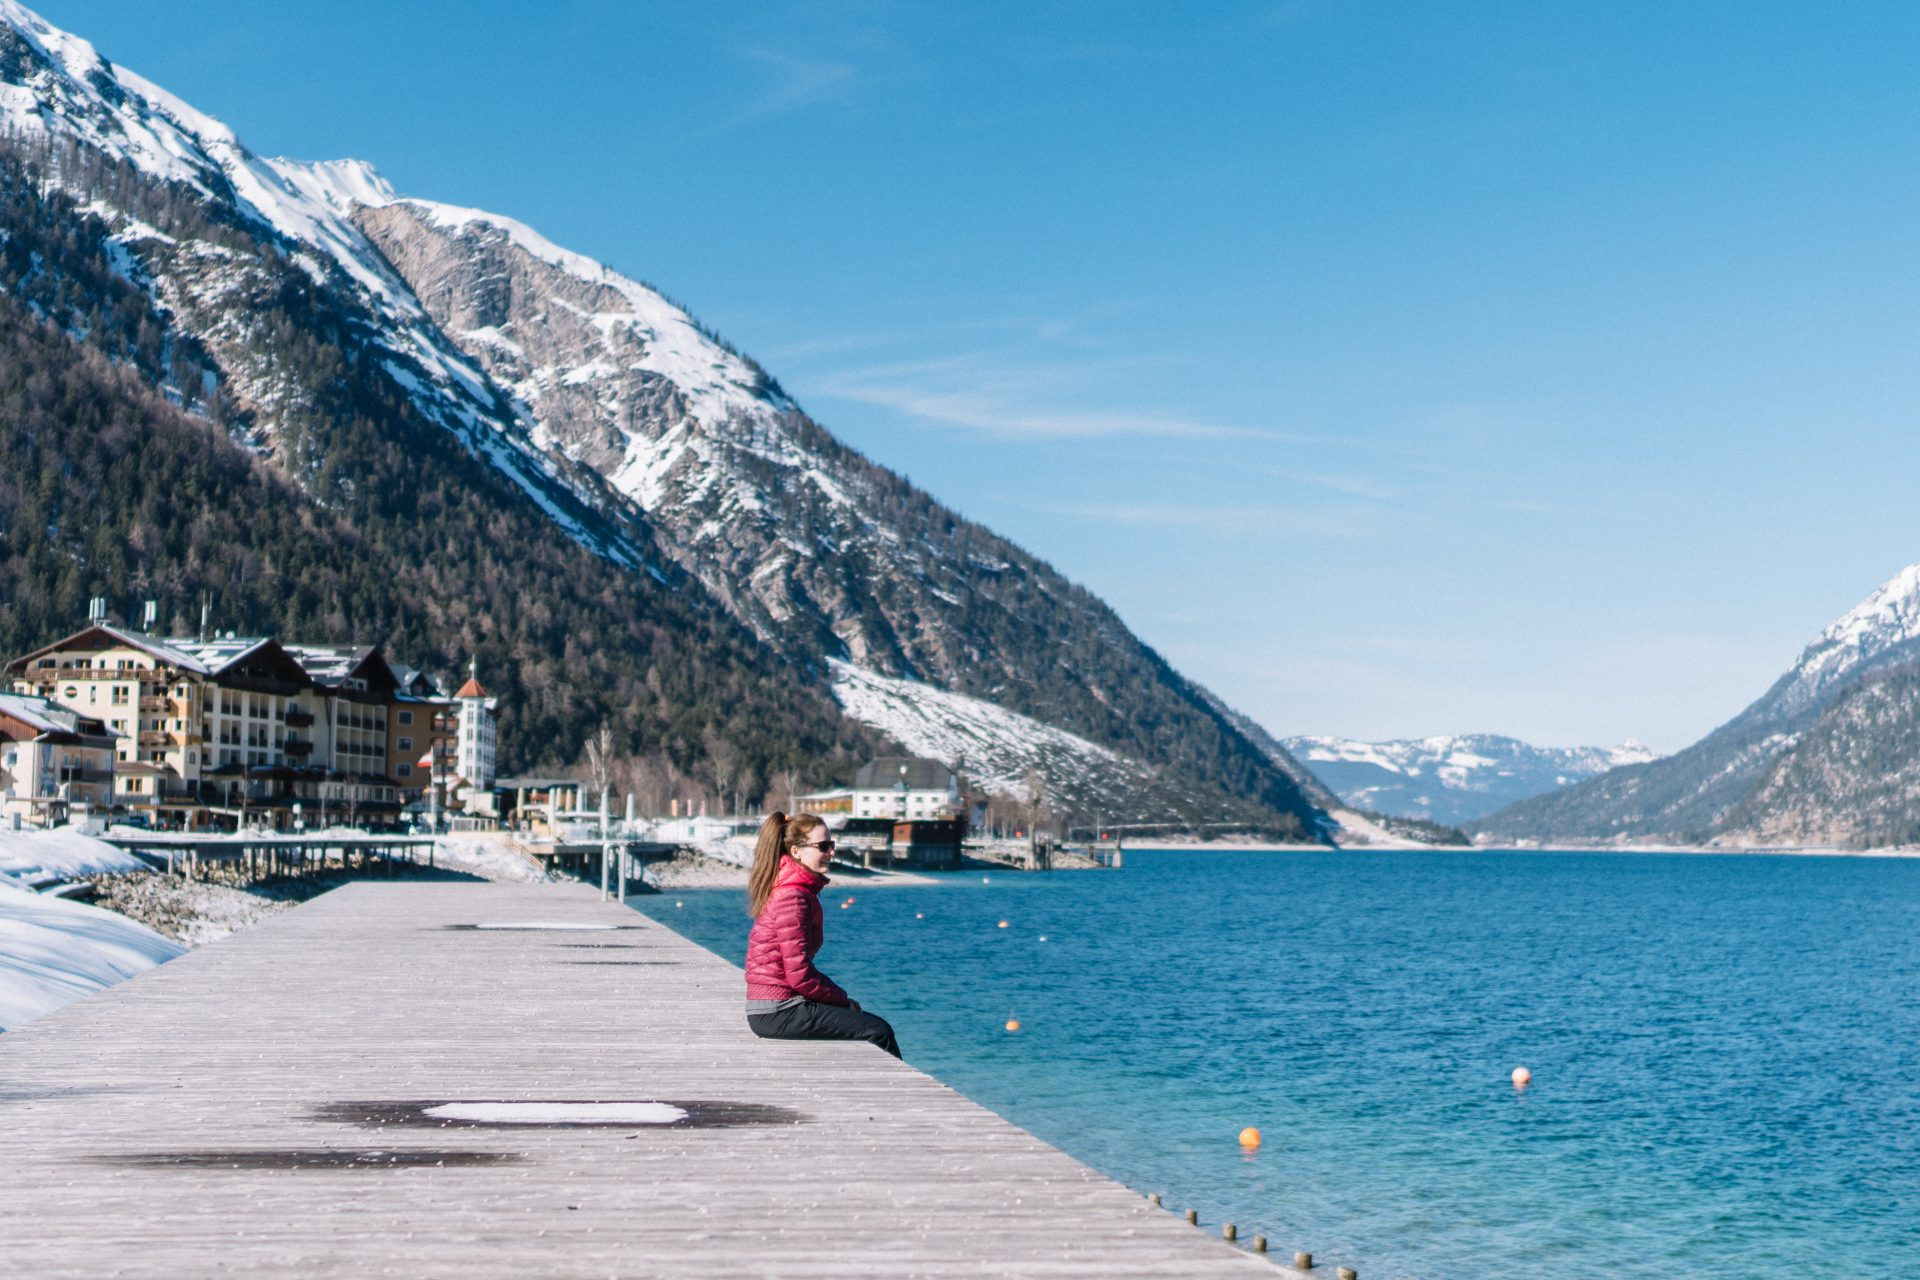 Op wintersport in Achensee